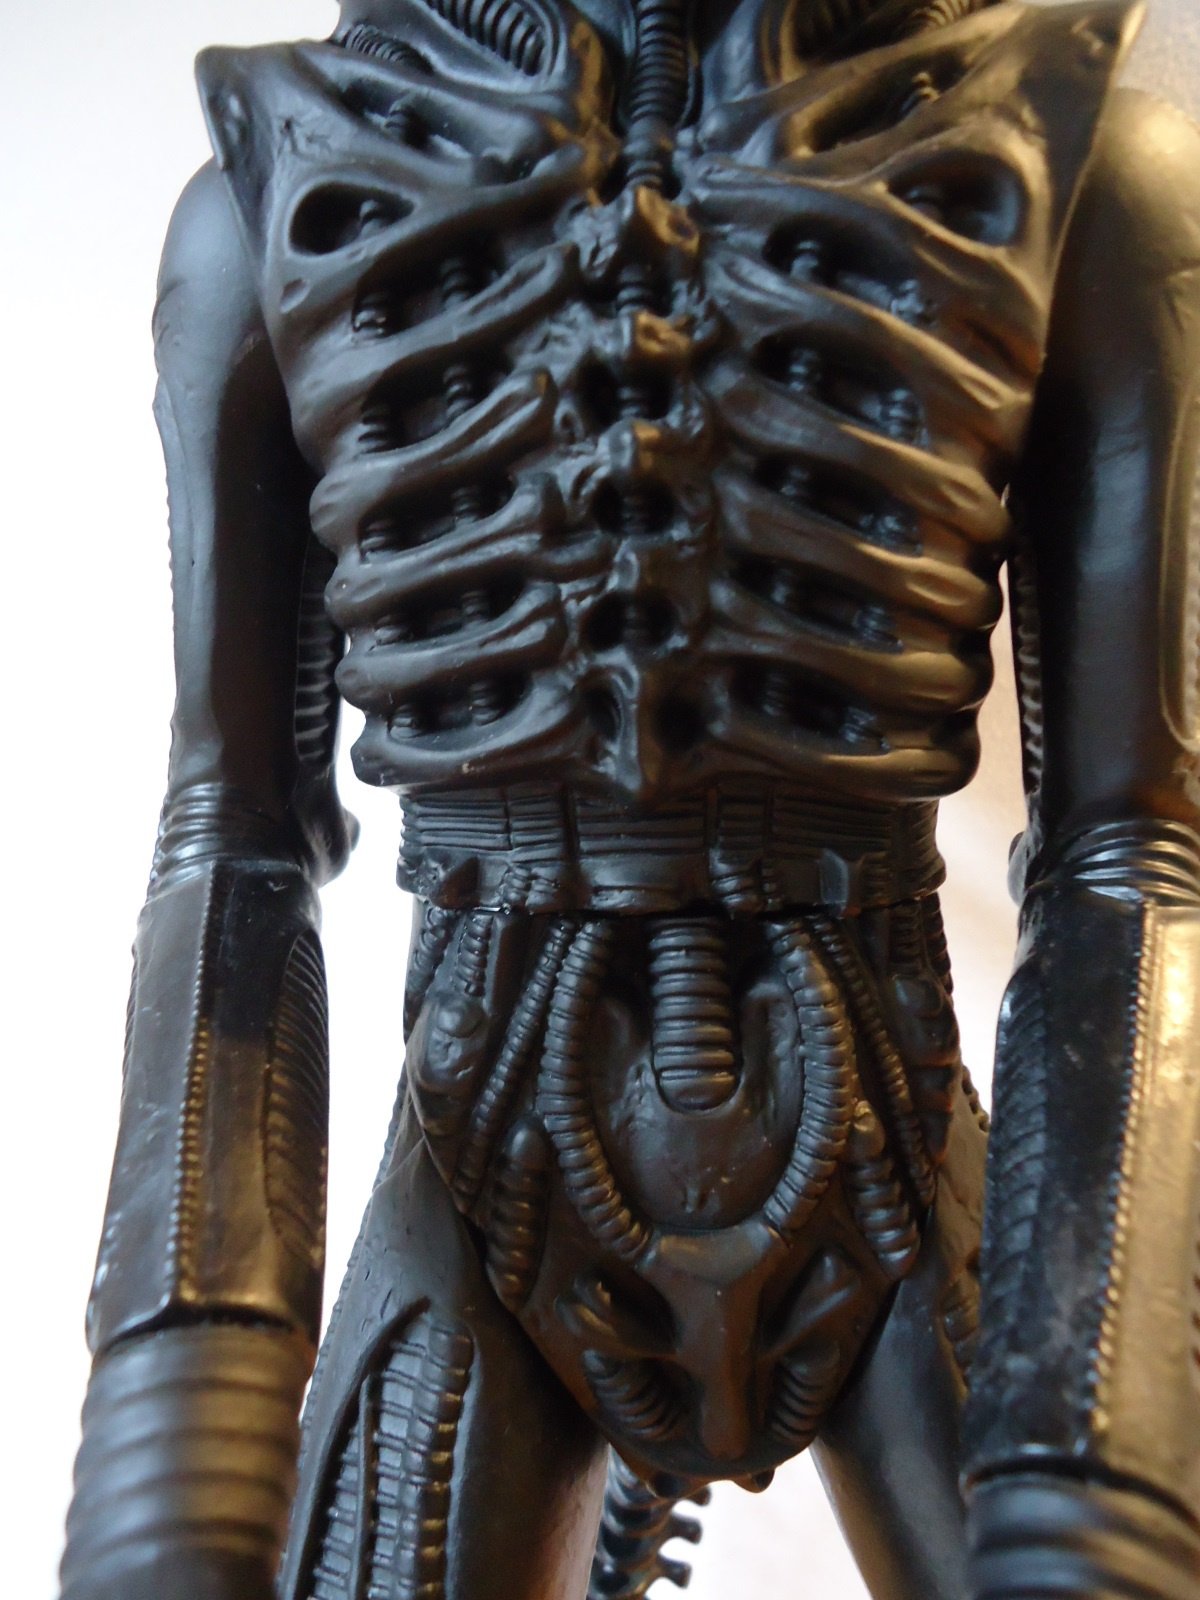 Another close up of the torso of the 1991 Halcyon ALIEN model kit.